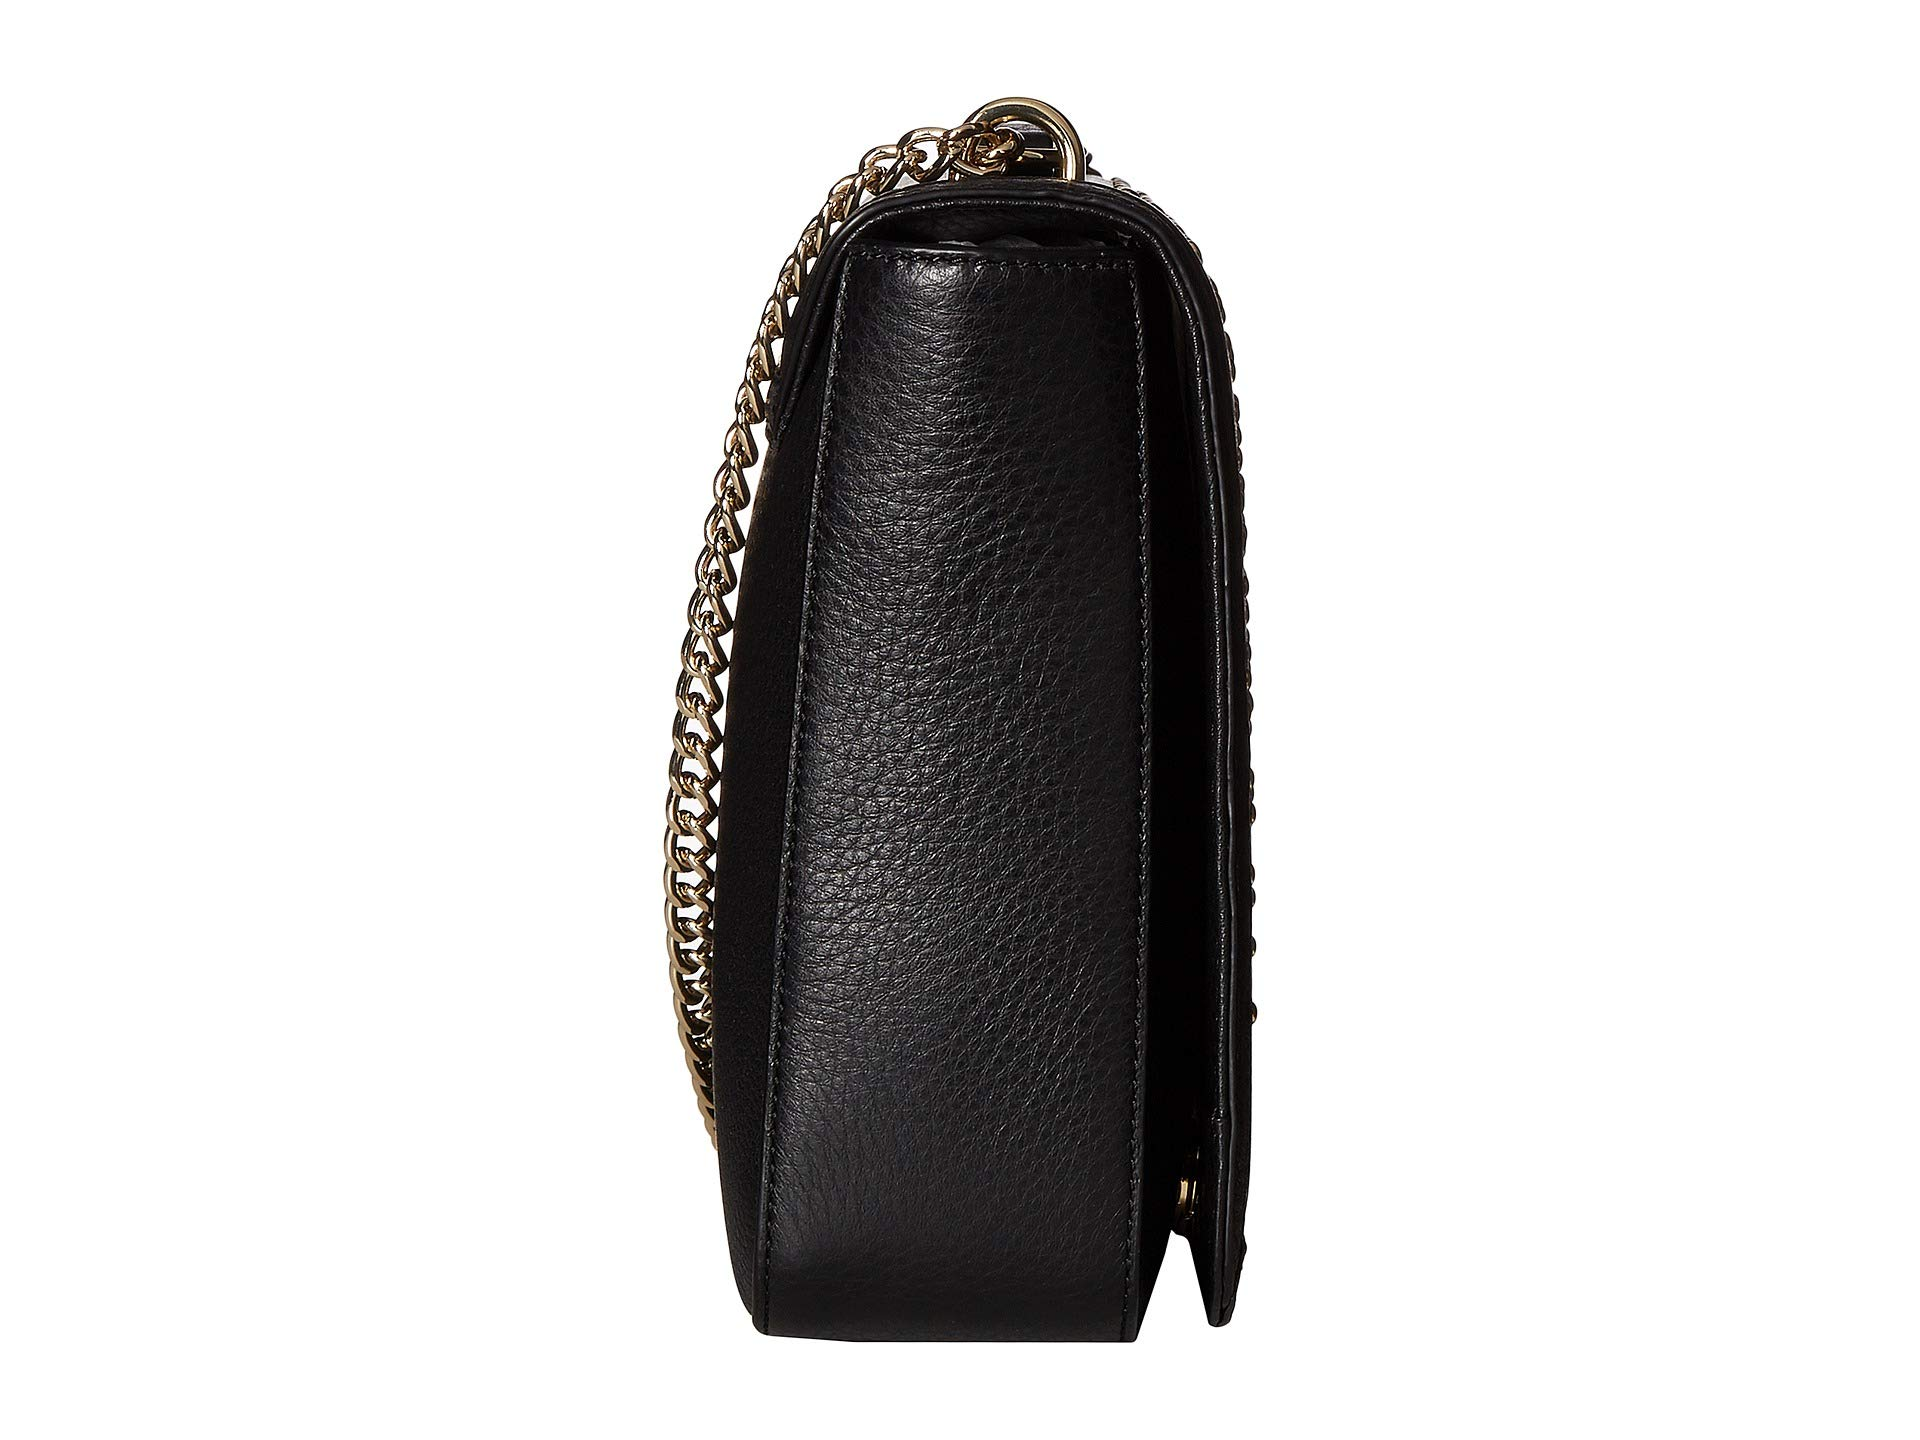 Love Studded Bag Moschino Shoulder Black Heart ppHqAwCr